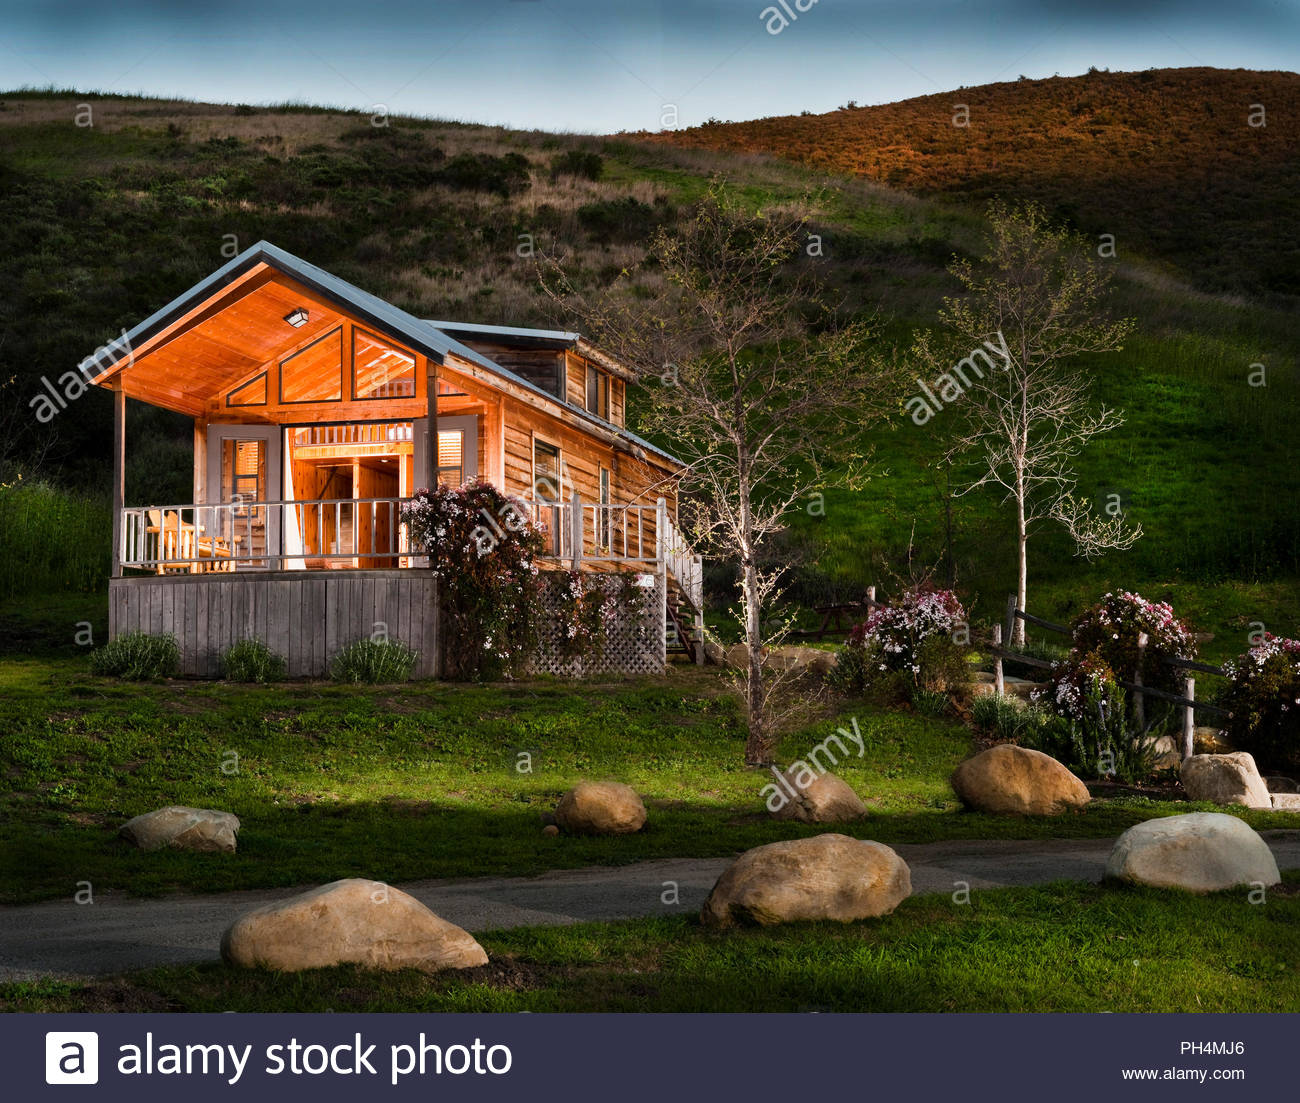 Wooden cabin at sunset - Stock Image